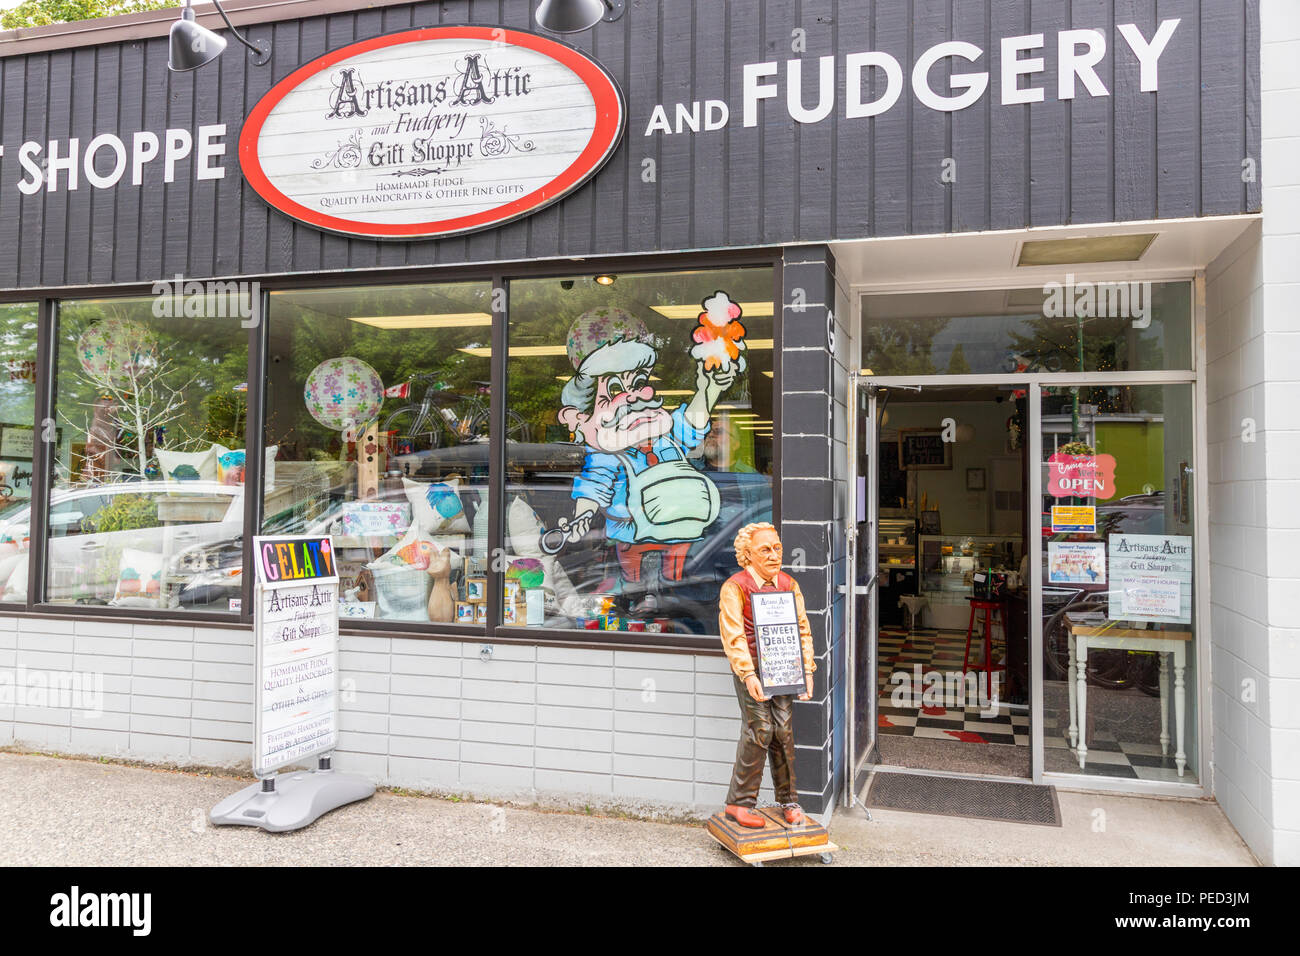 The Artisans Attic and Fudgery Gift Shoppe in the town of Hope, British Columbia, Canada - Stock Image